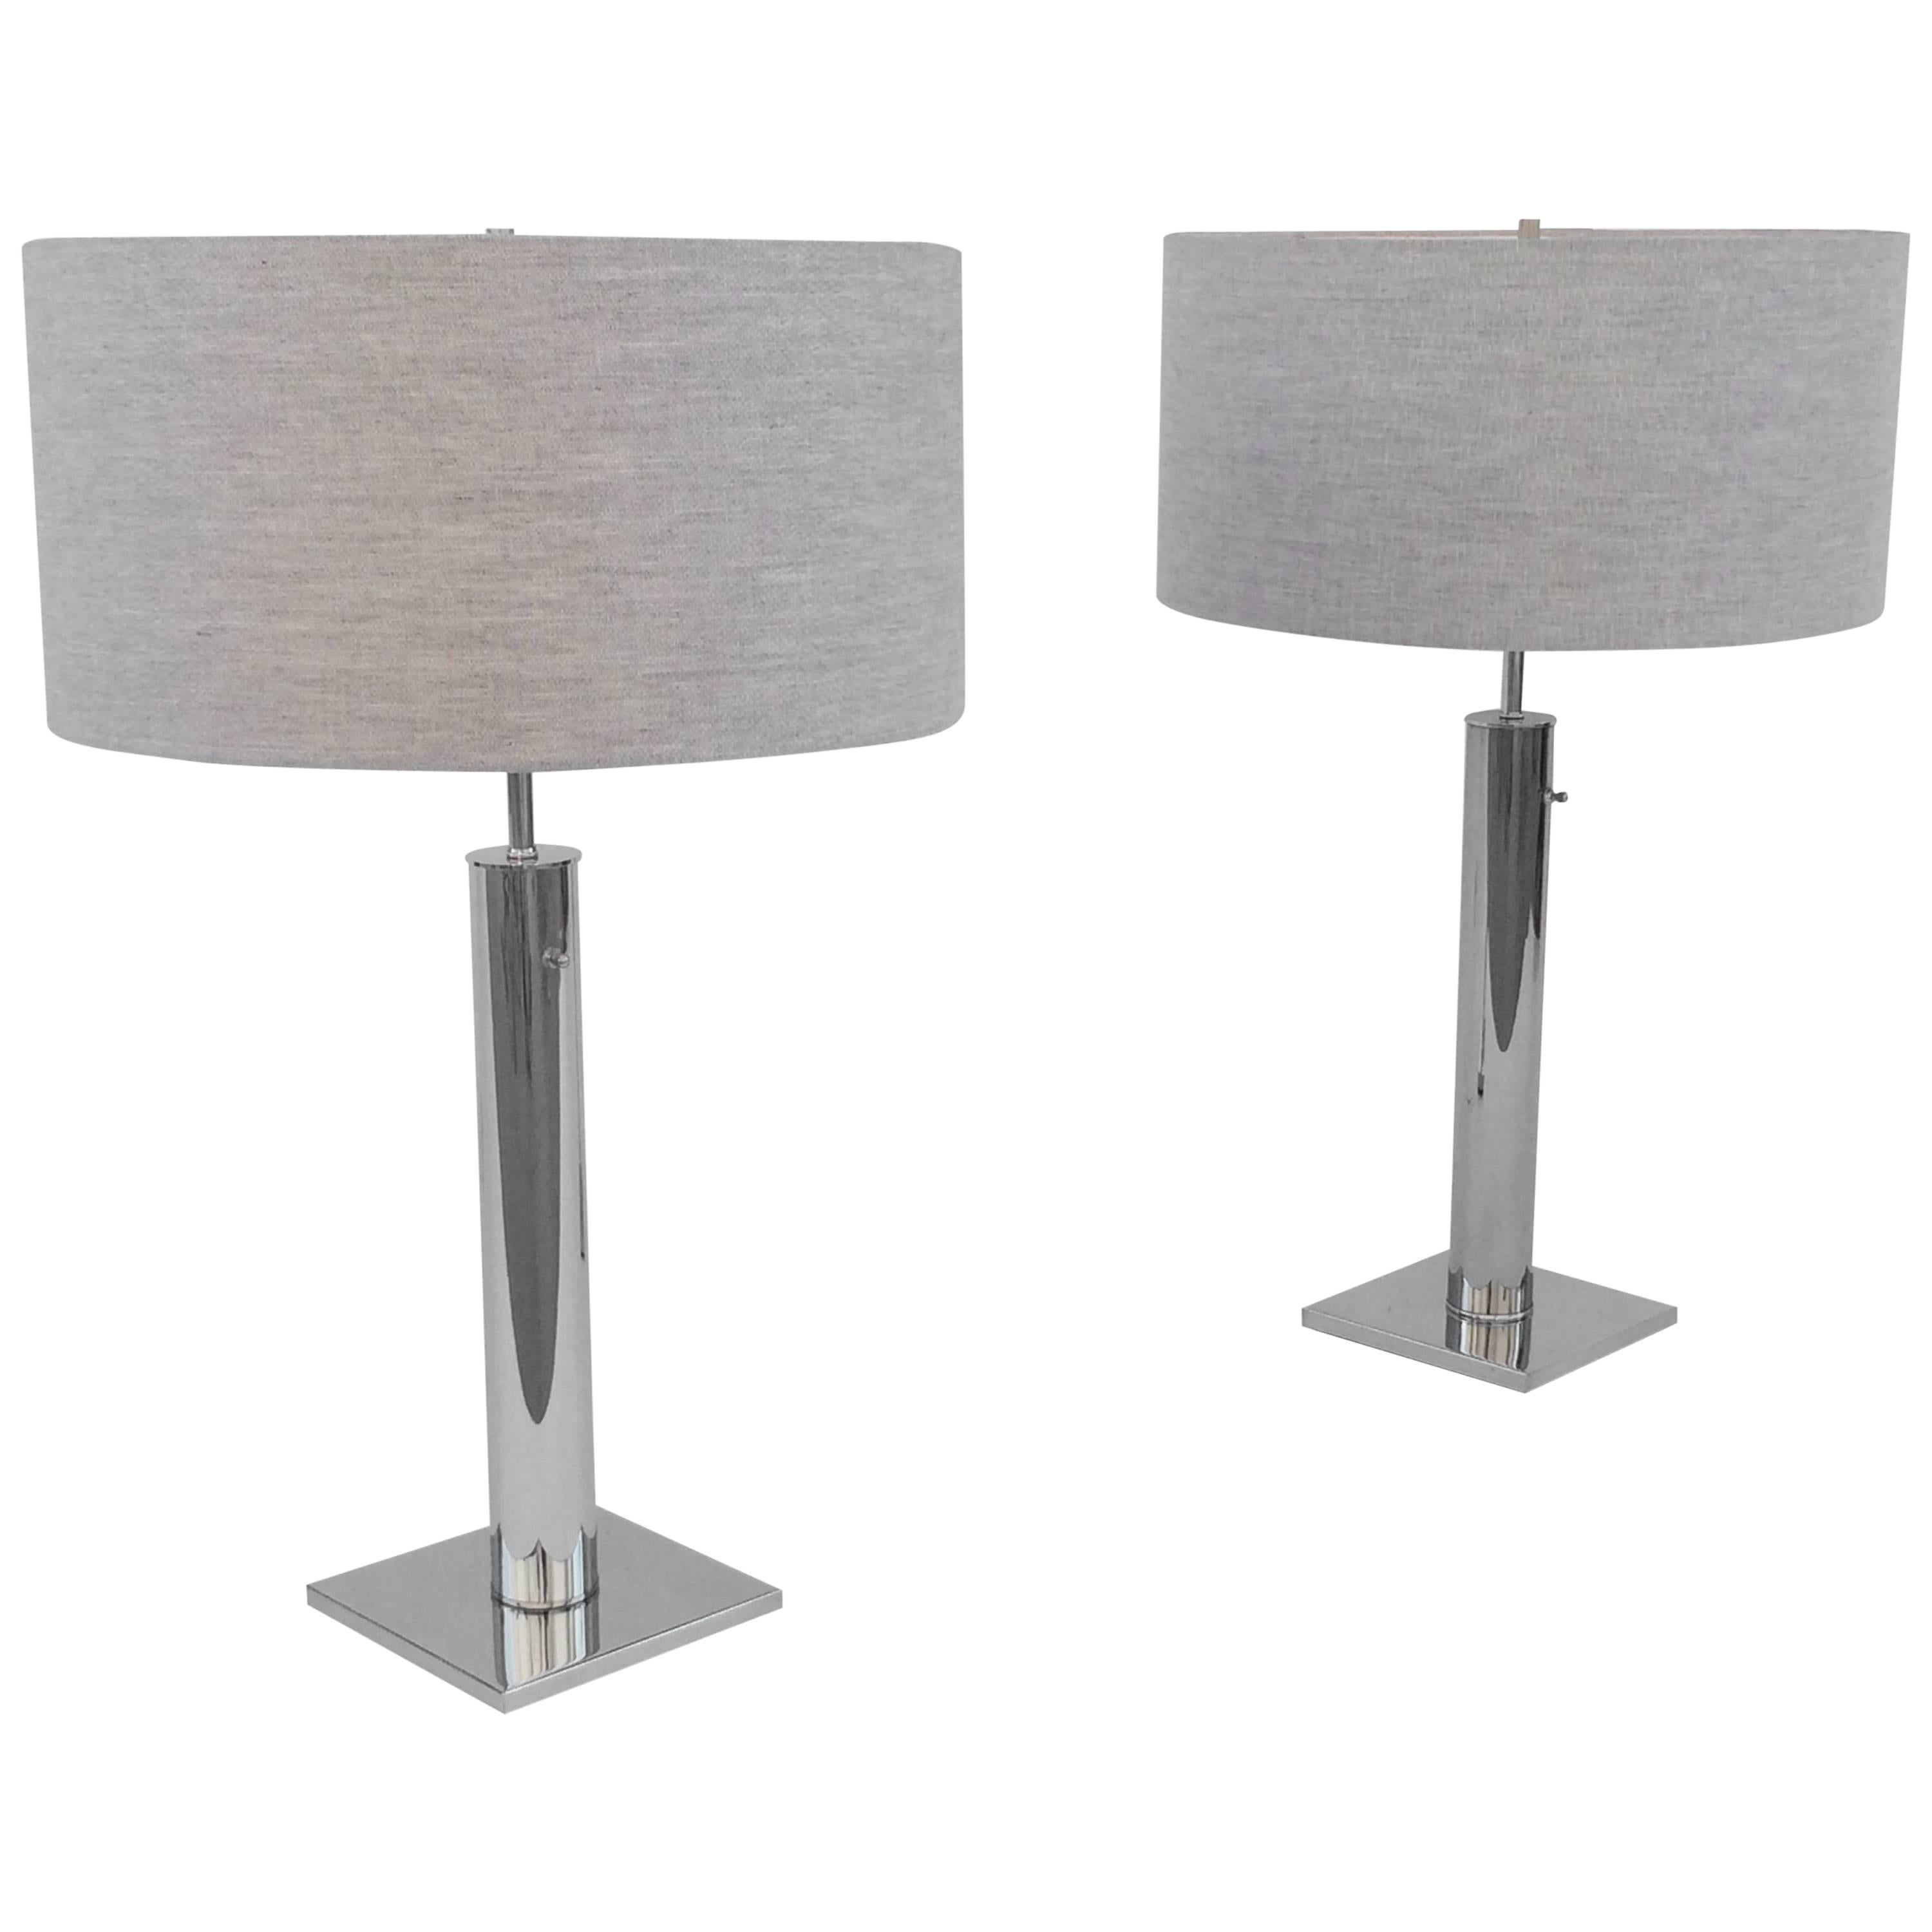 Pair of Polished Chrome Table Lamps by Nessen